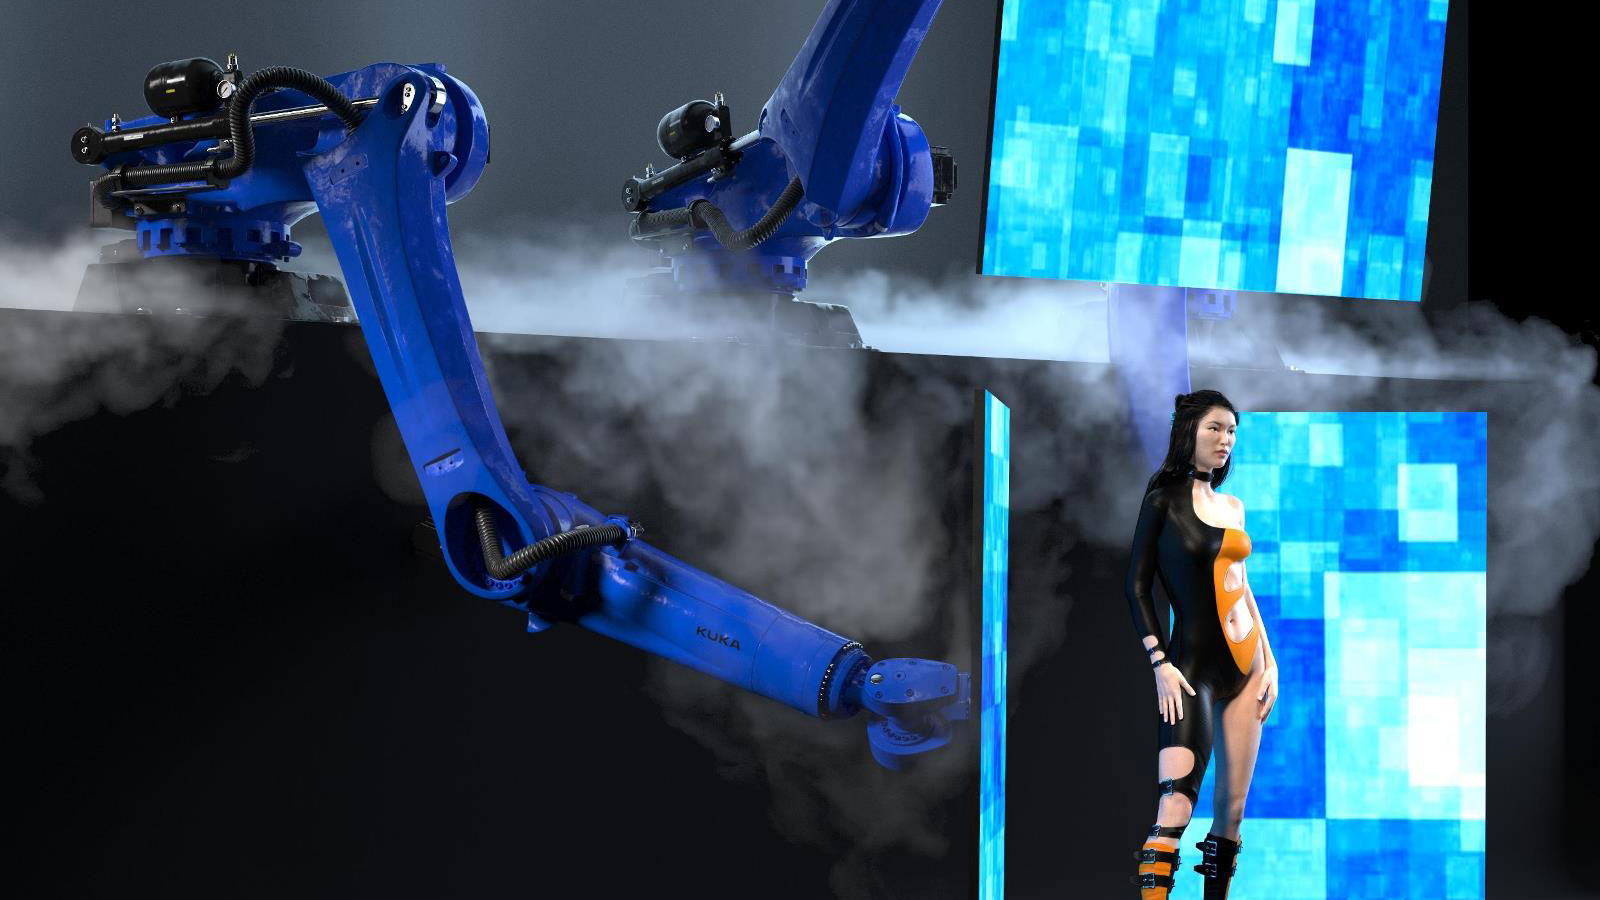 3 robots moving screen background, integrated in stage show